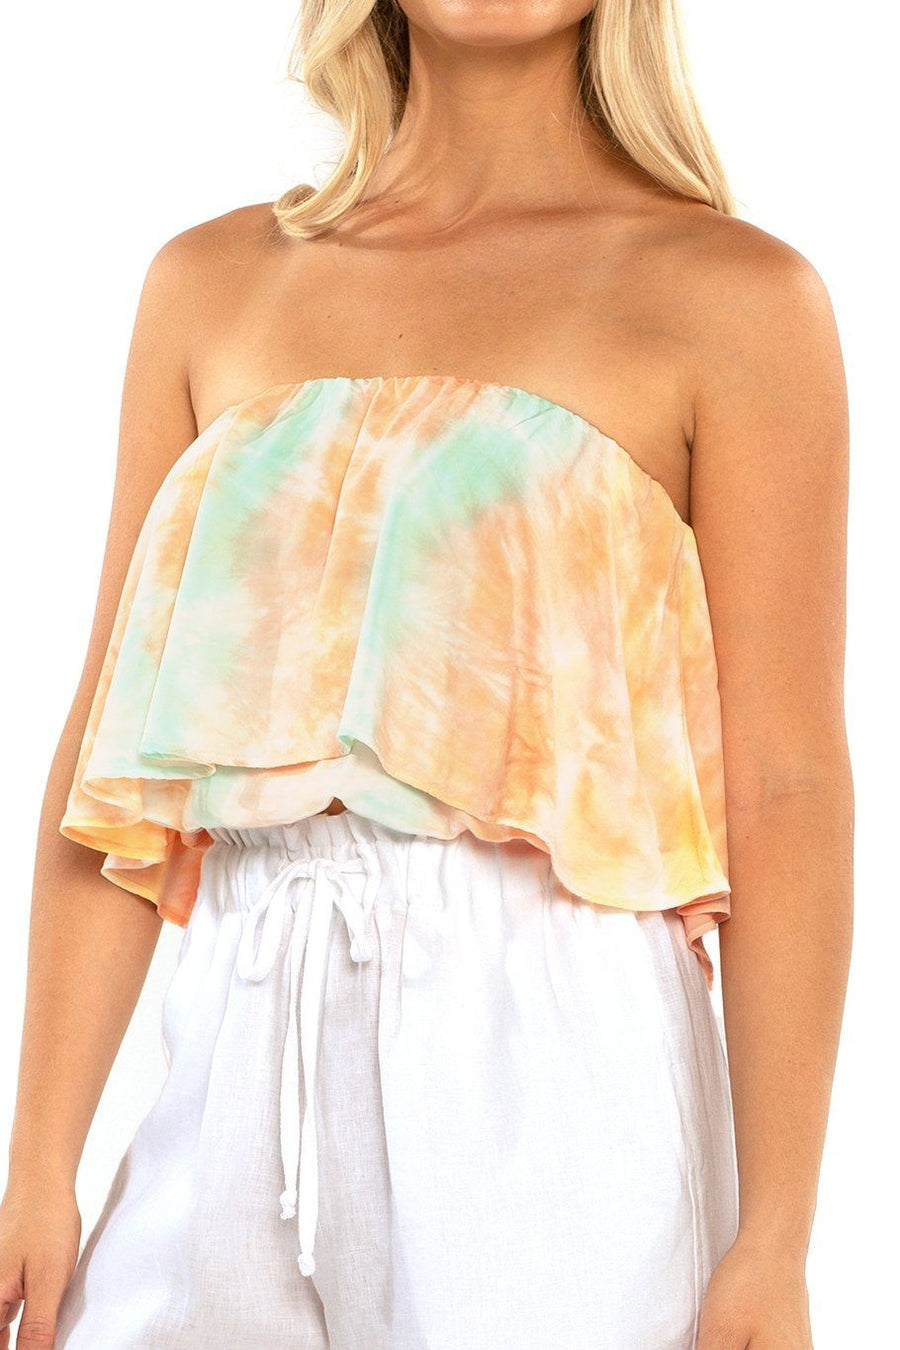 Huntington Layered Top - Sunset Dye - Shore